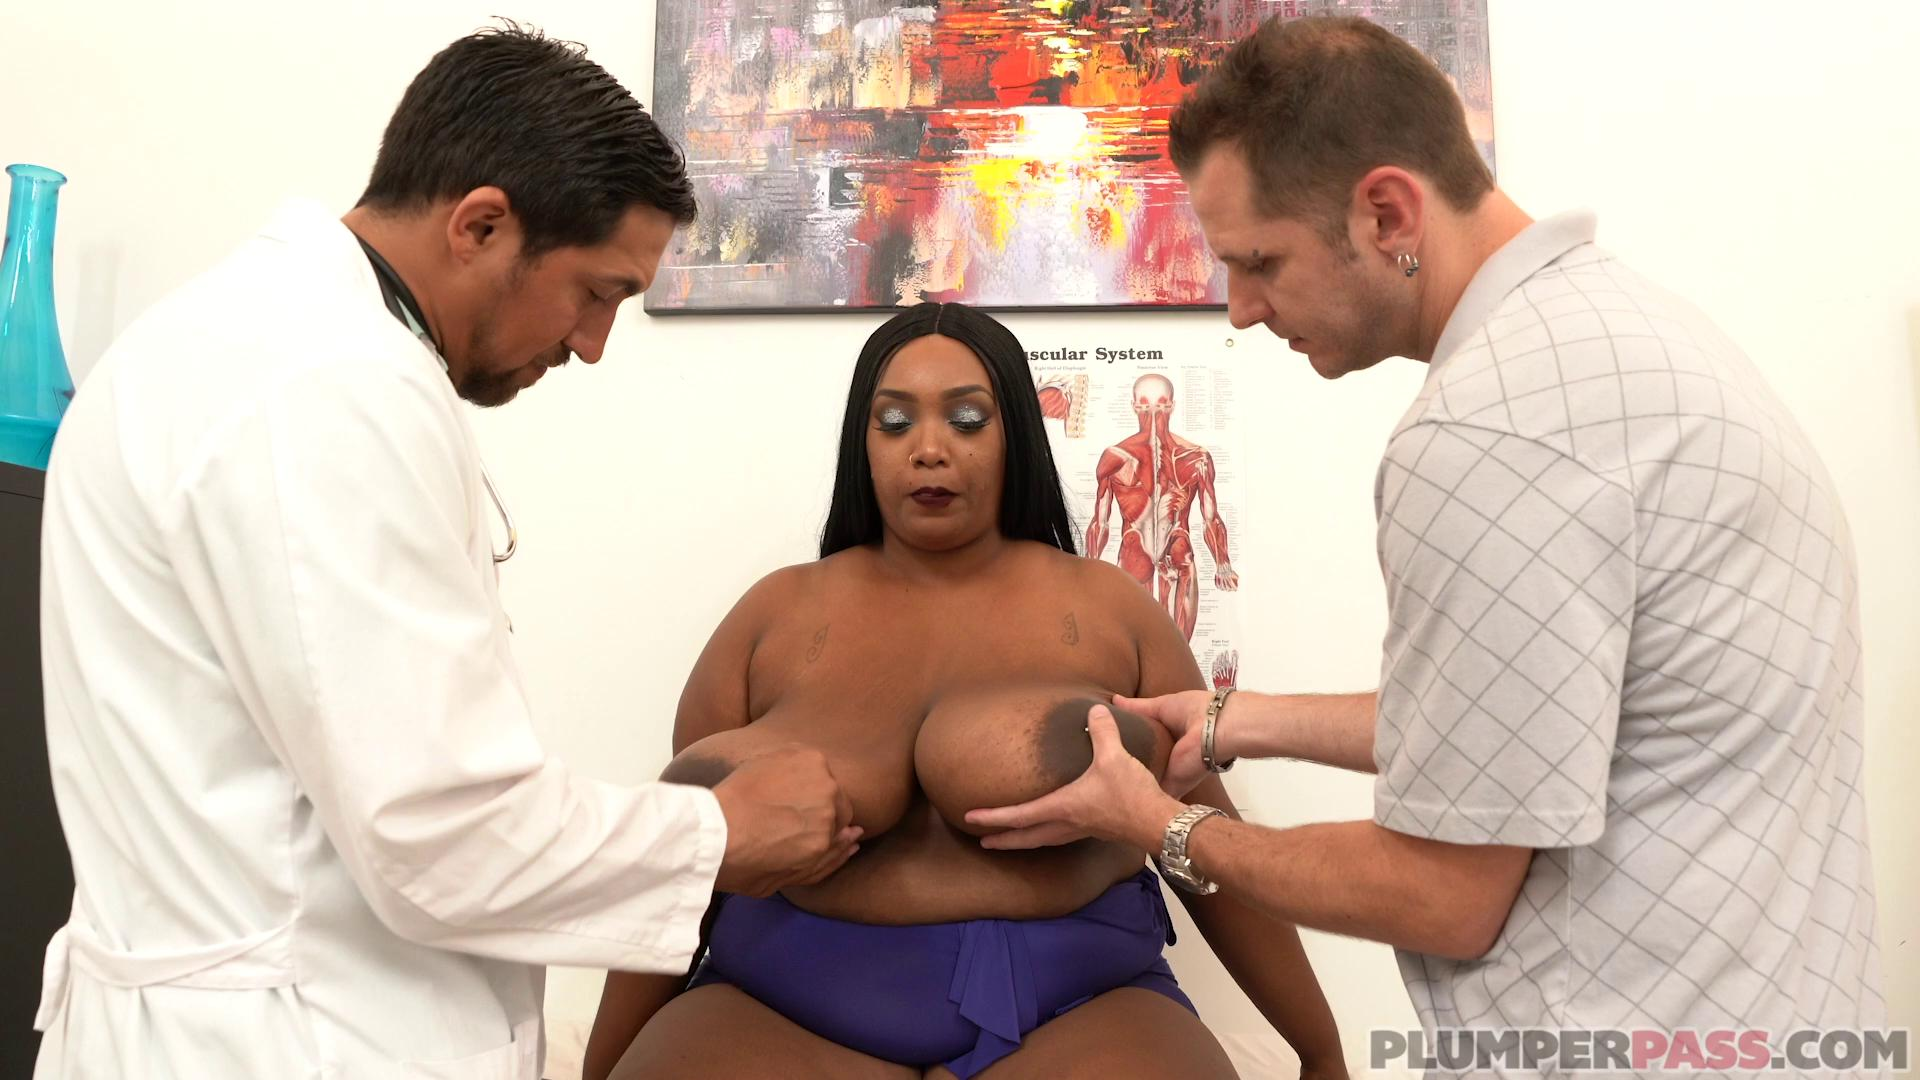 PlumperPass – Dippd N Redd Medical Assistant For Redd